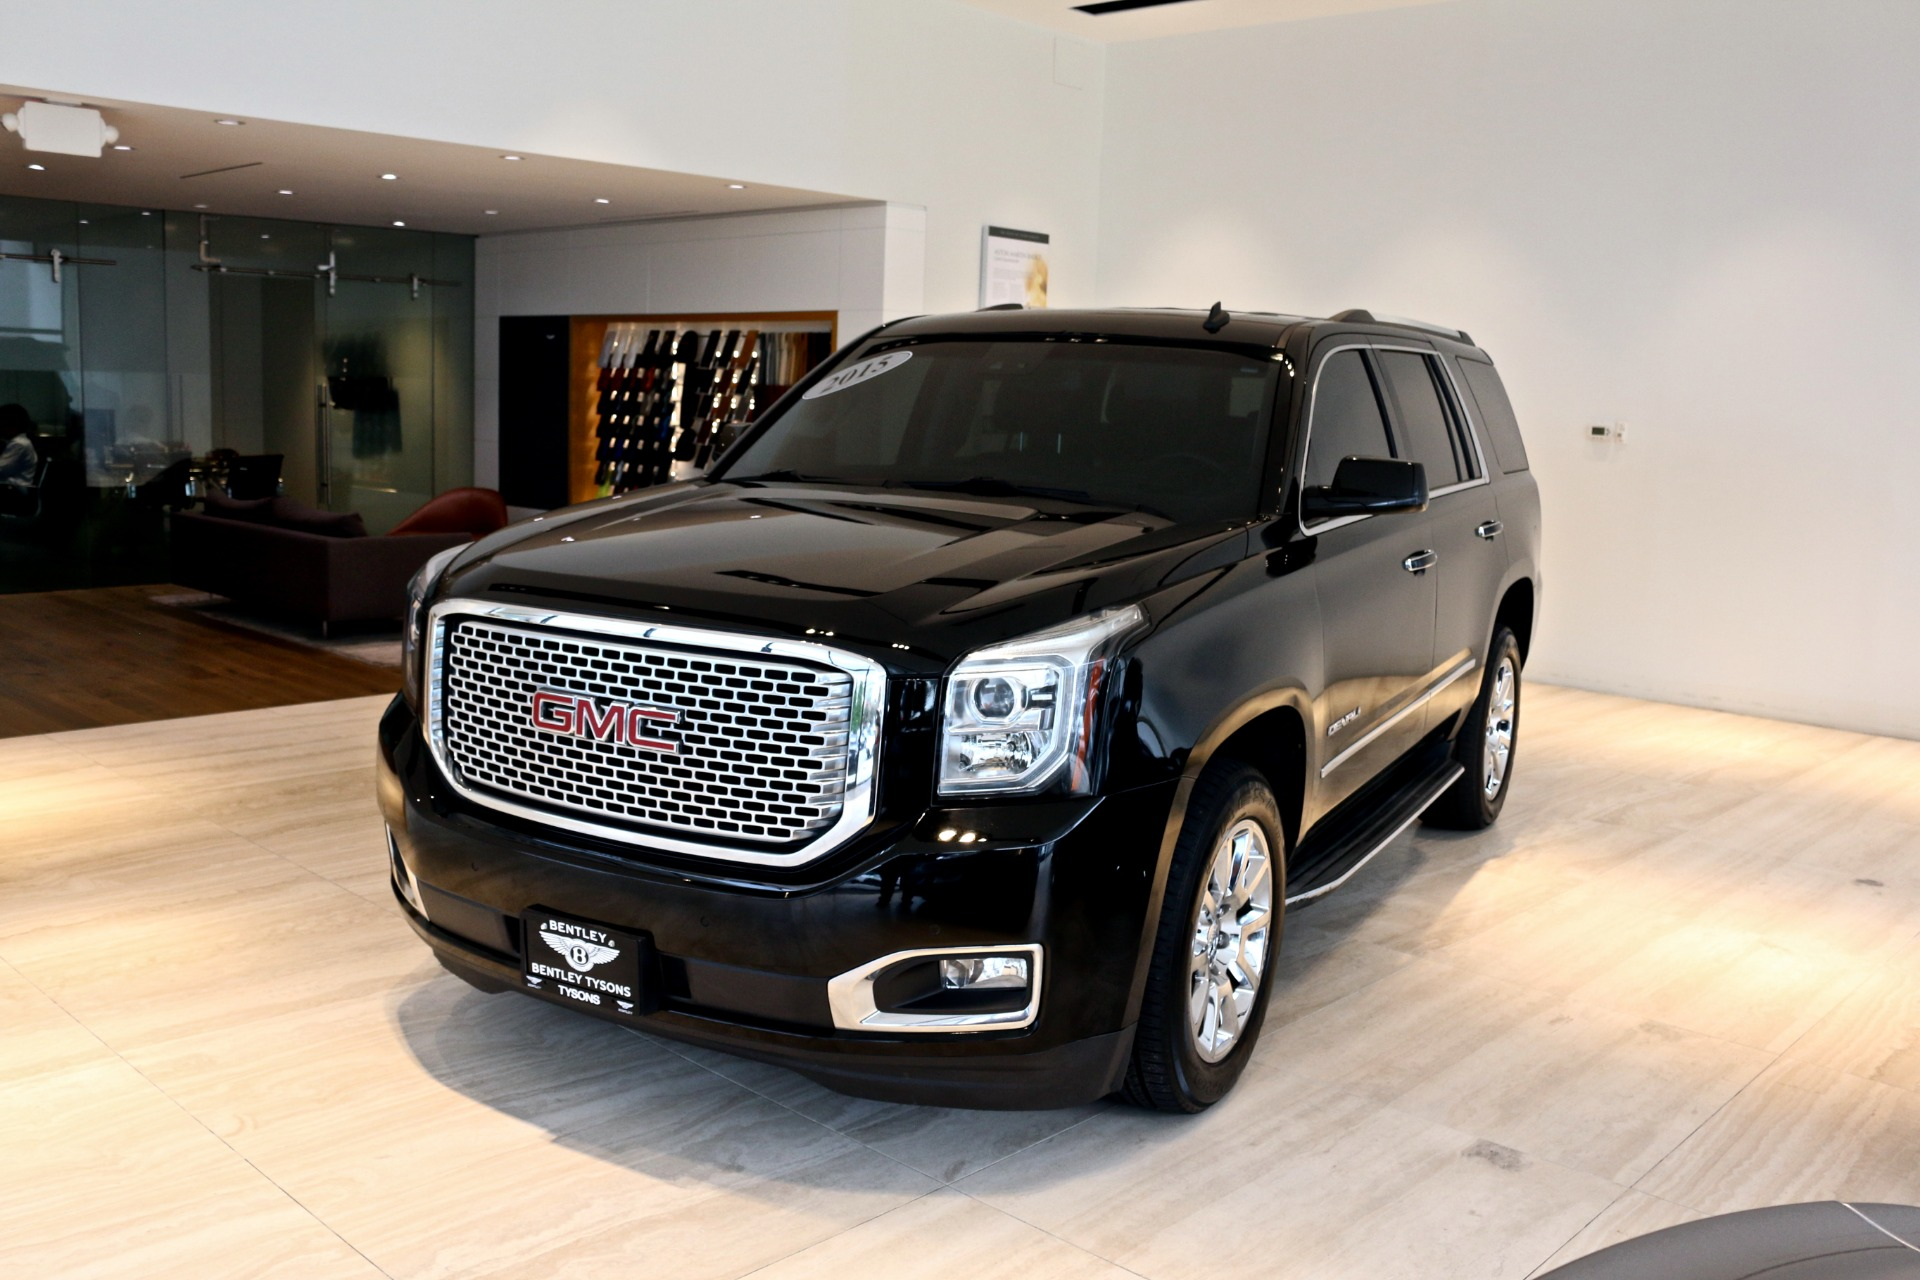 2015 Gmc Yukon Denali Stock P154651 For Sale Near Vienna